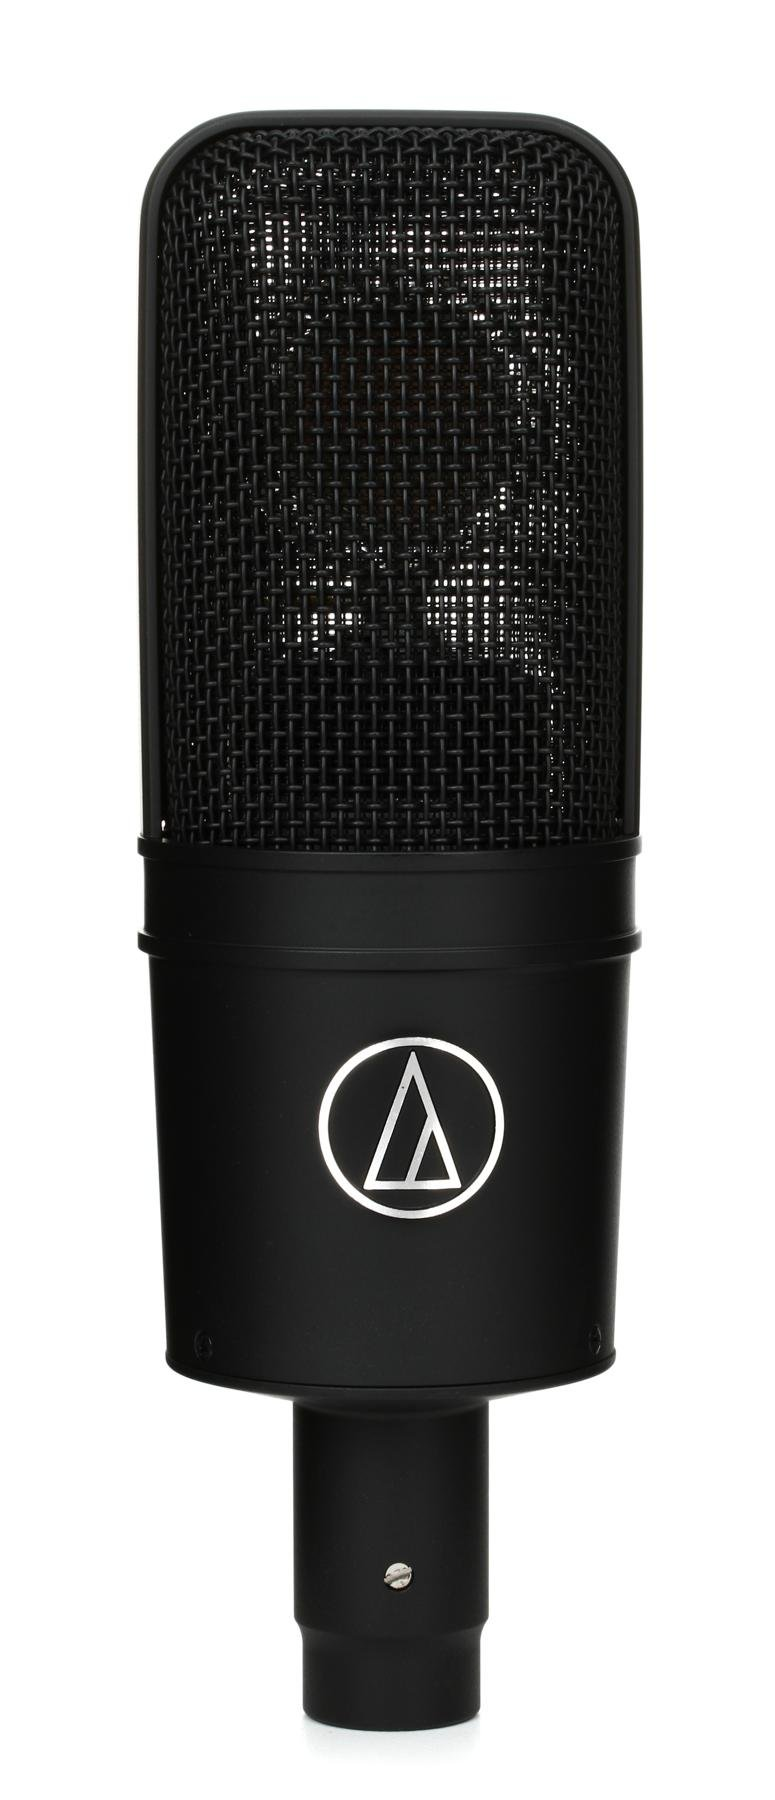 Audio Technica At4040 Large Diaphragm Condenser Microphone Sweetwater Diagram Construction Image 1